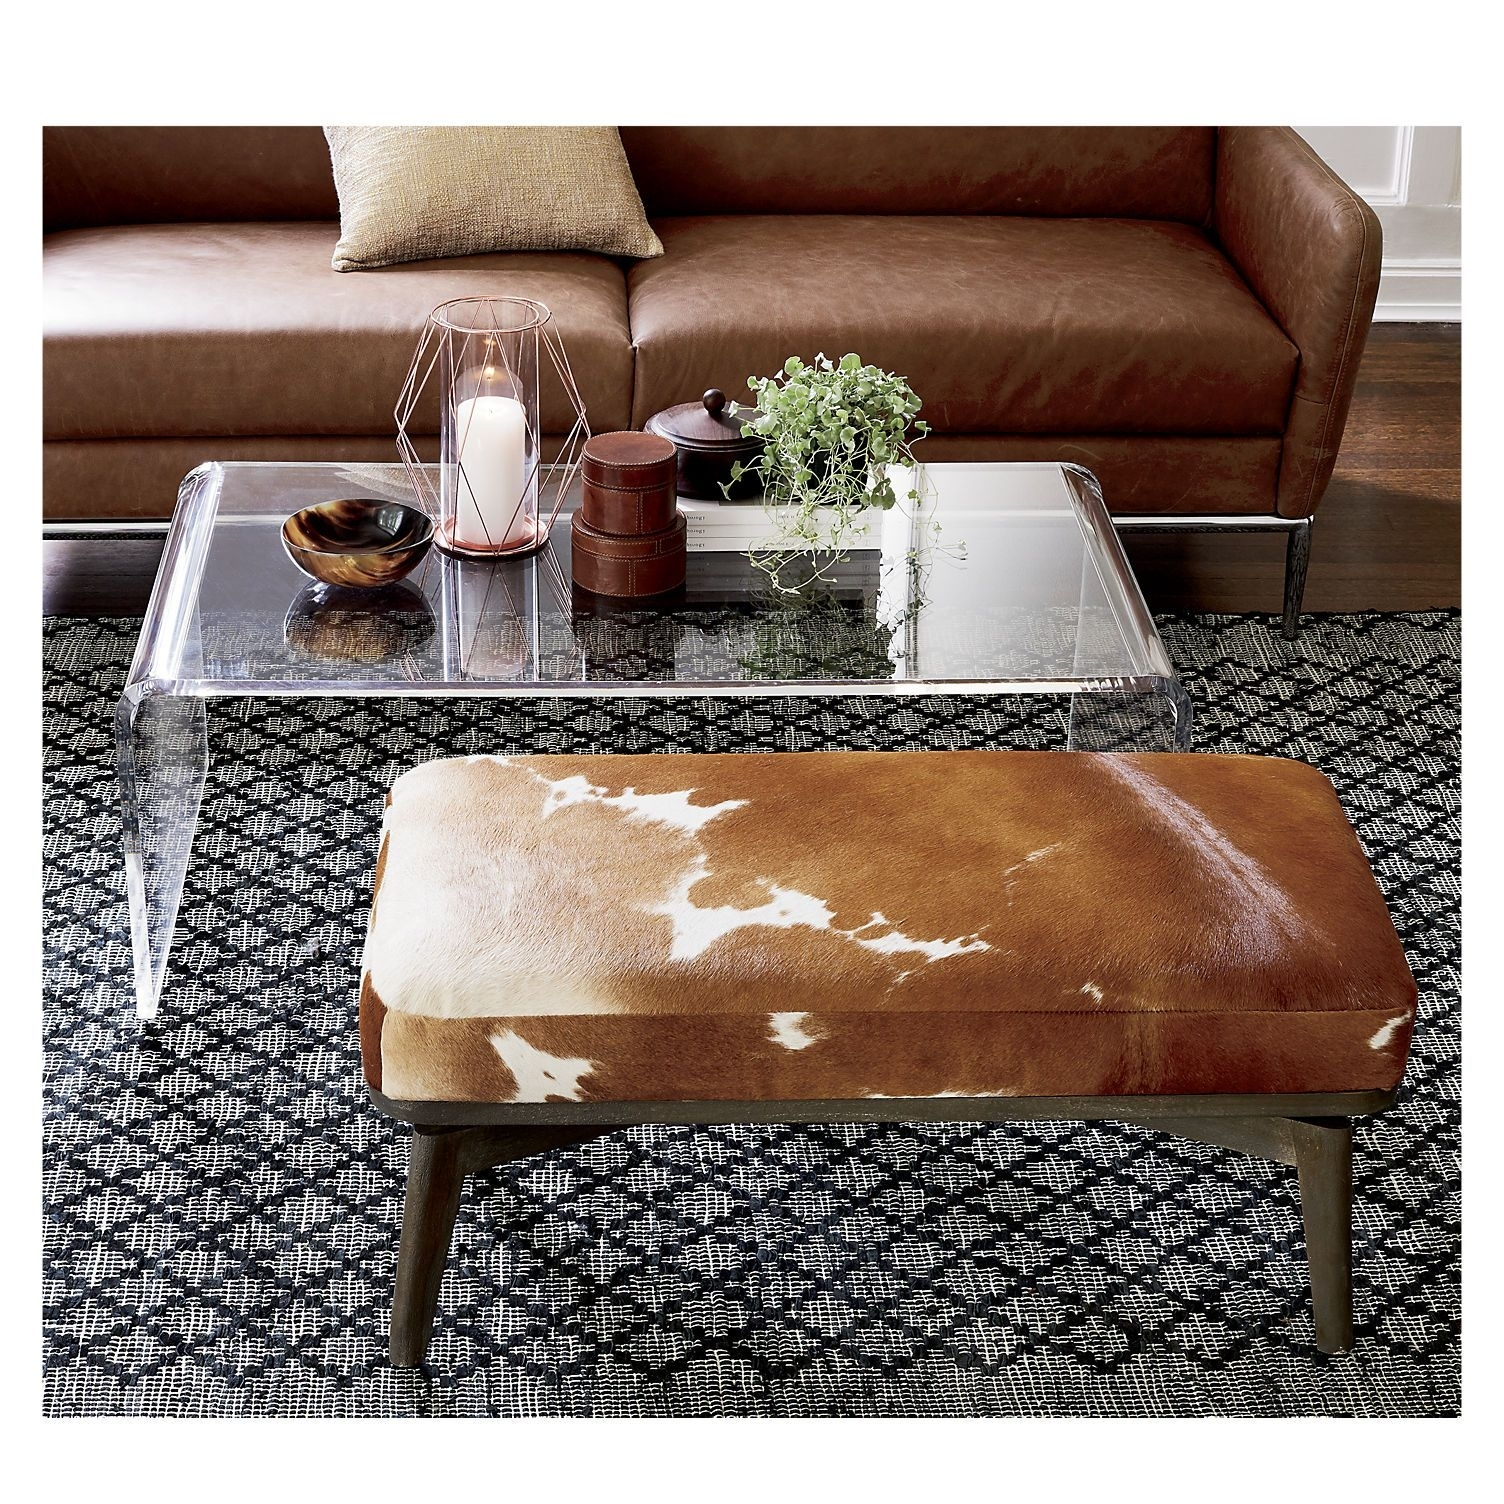 Peekaboo Acrylic Coffee Table In 2018 | Style And More | Pinterest for Peekaboo Acrylic Coffee Tables (Image 22 of 30)